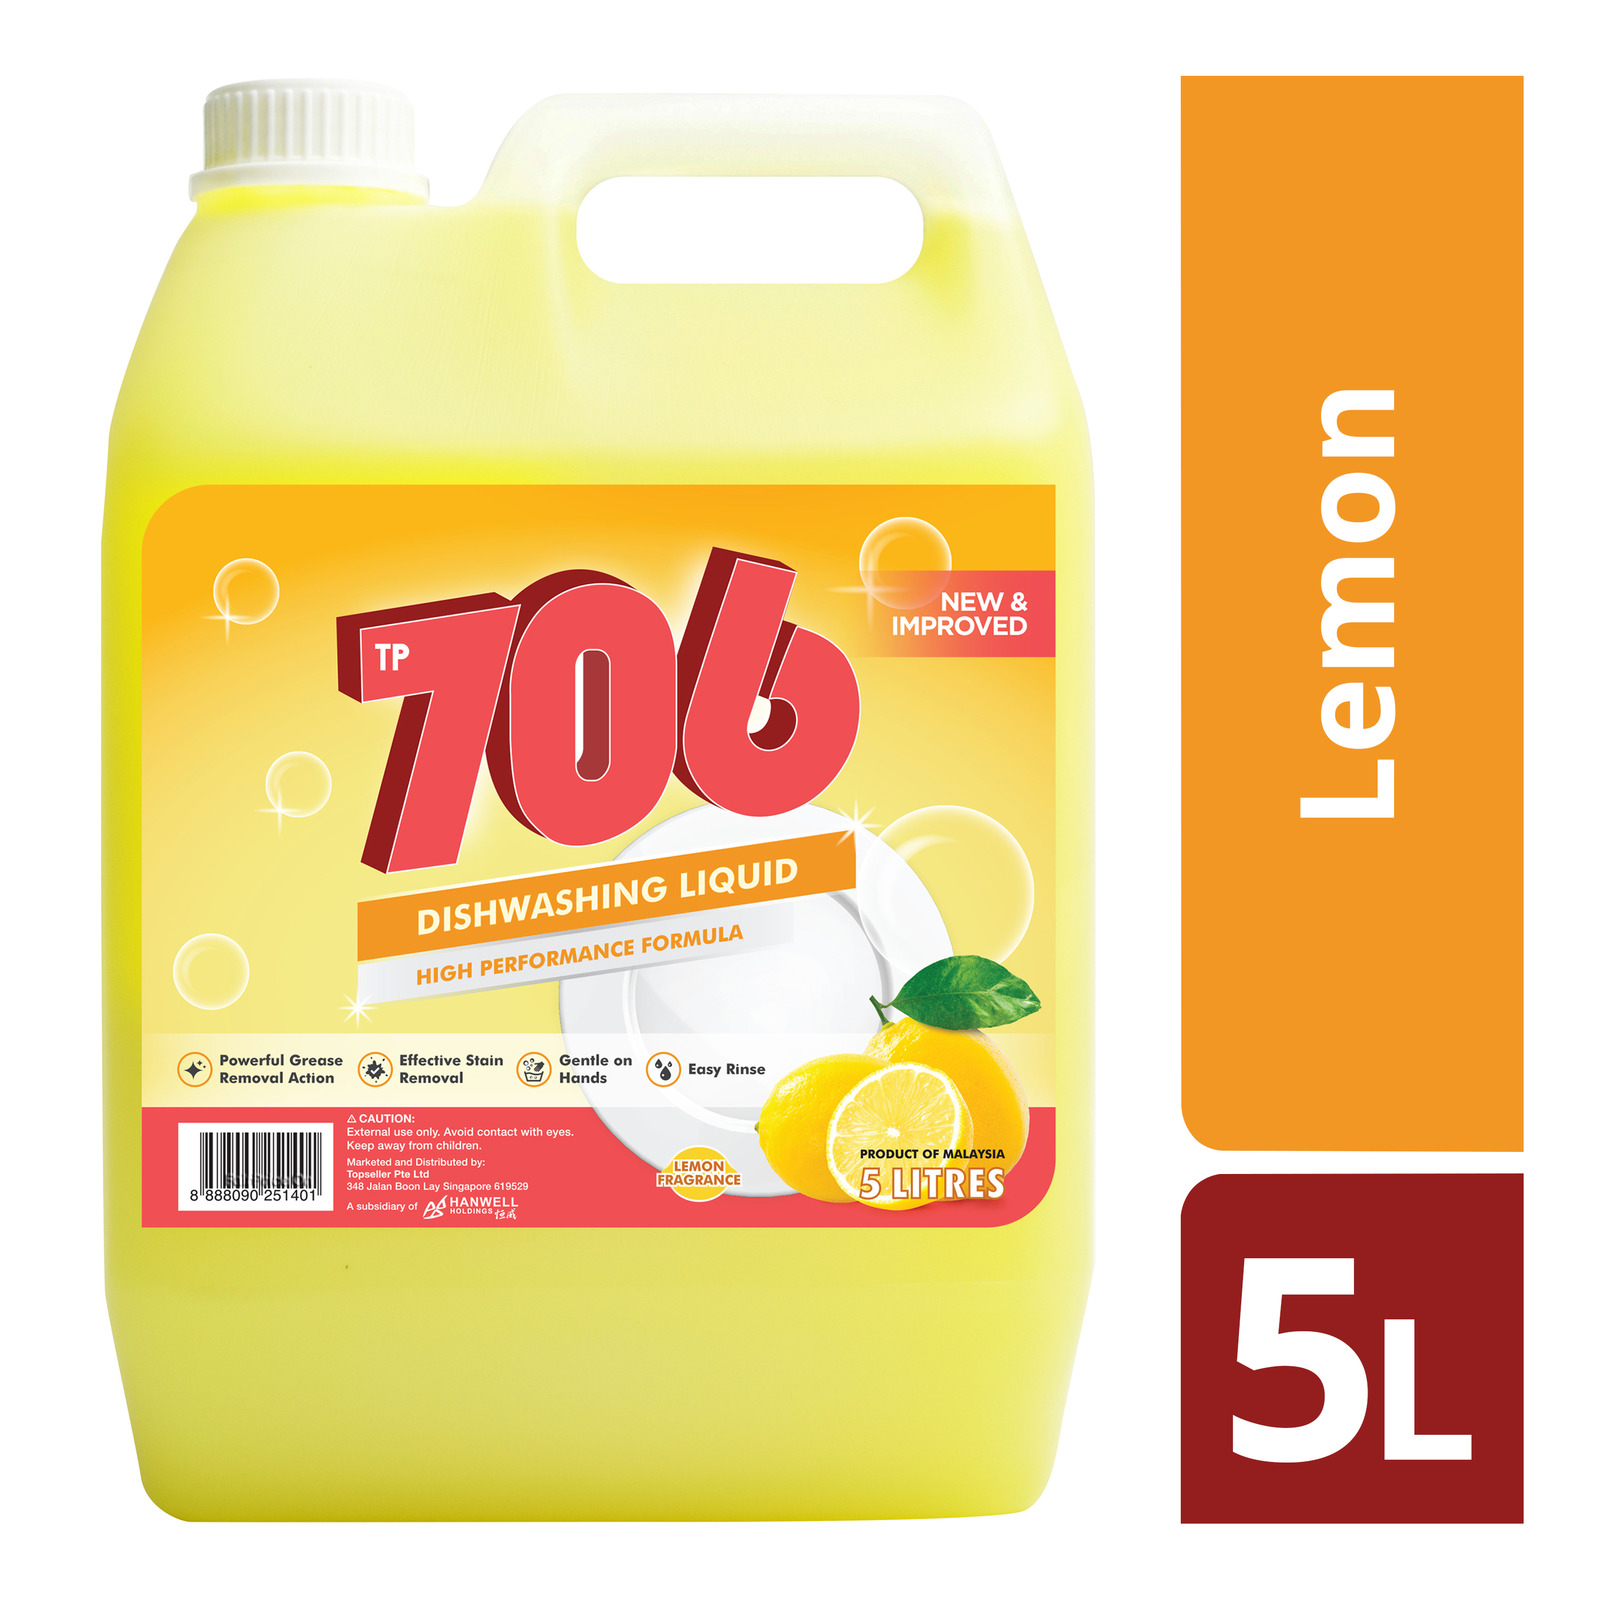 TP 706 Dishwashing Liquid - Lemon